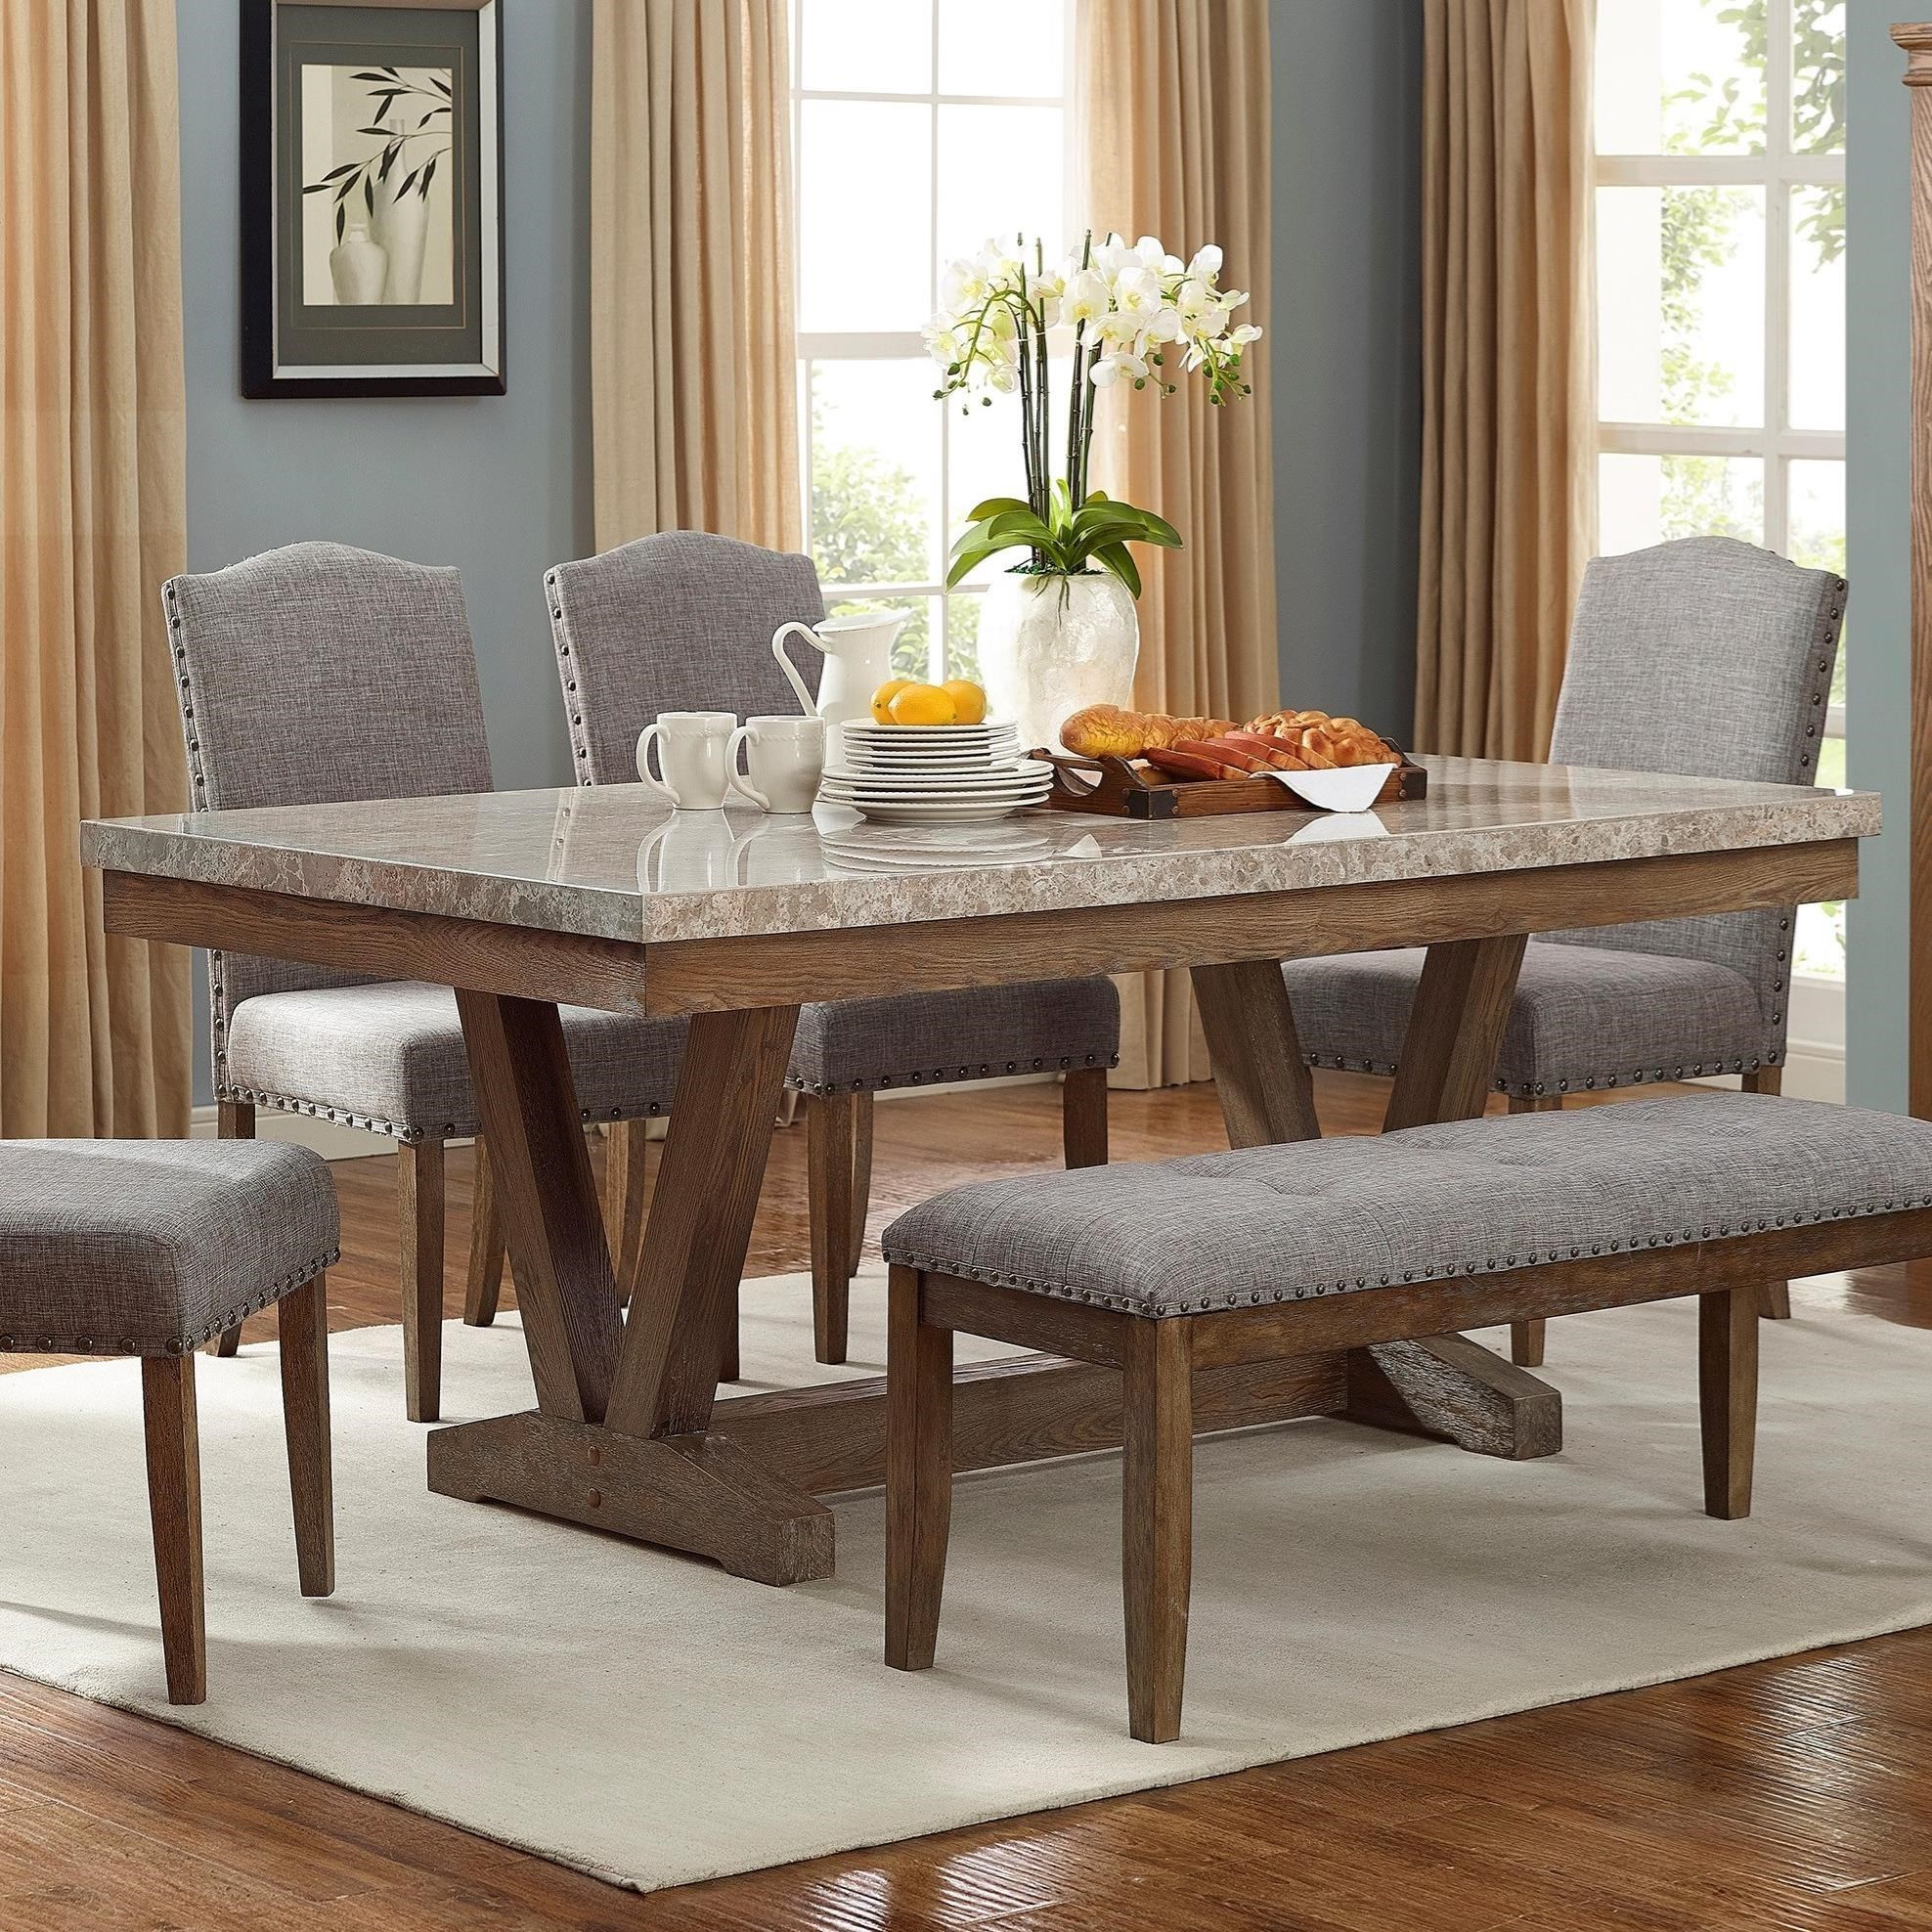 Vesper Dining Dining Table by Crown Mark at Catalog Outlet